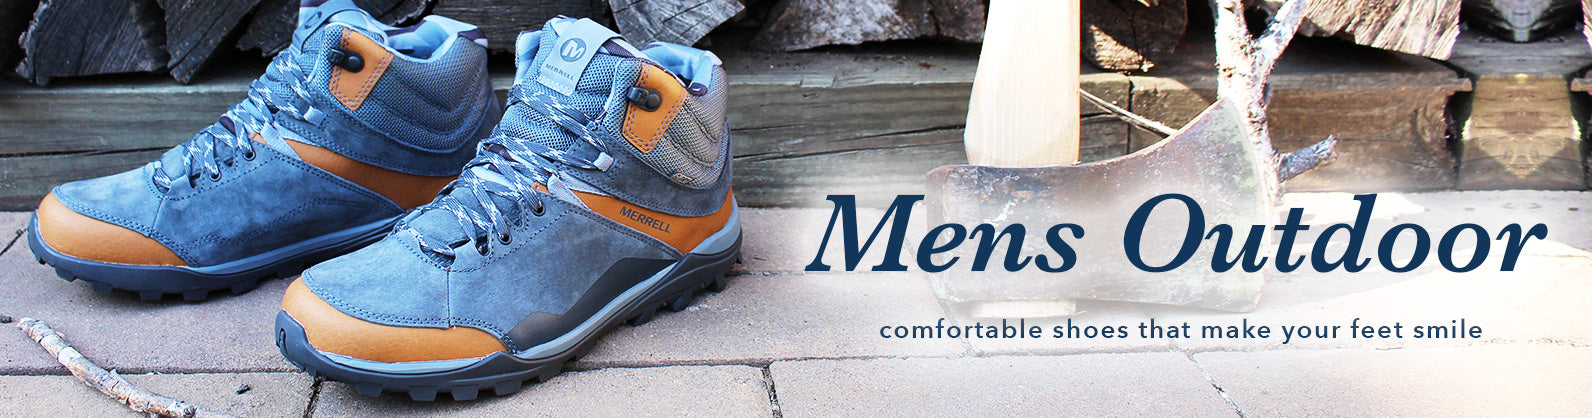 Merrell Men's Outdoor Shoes